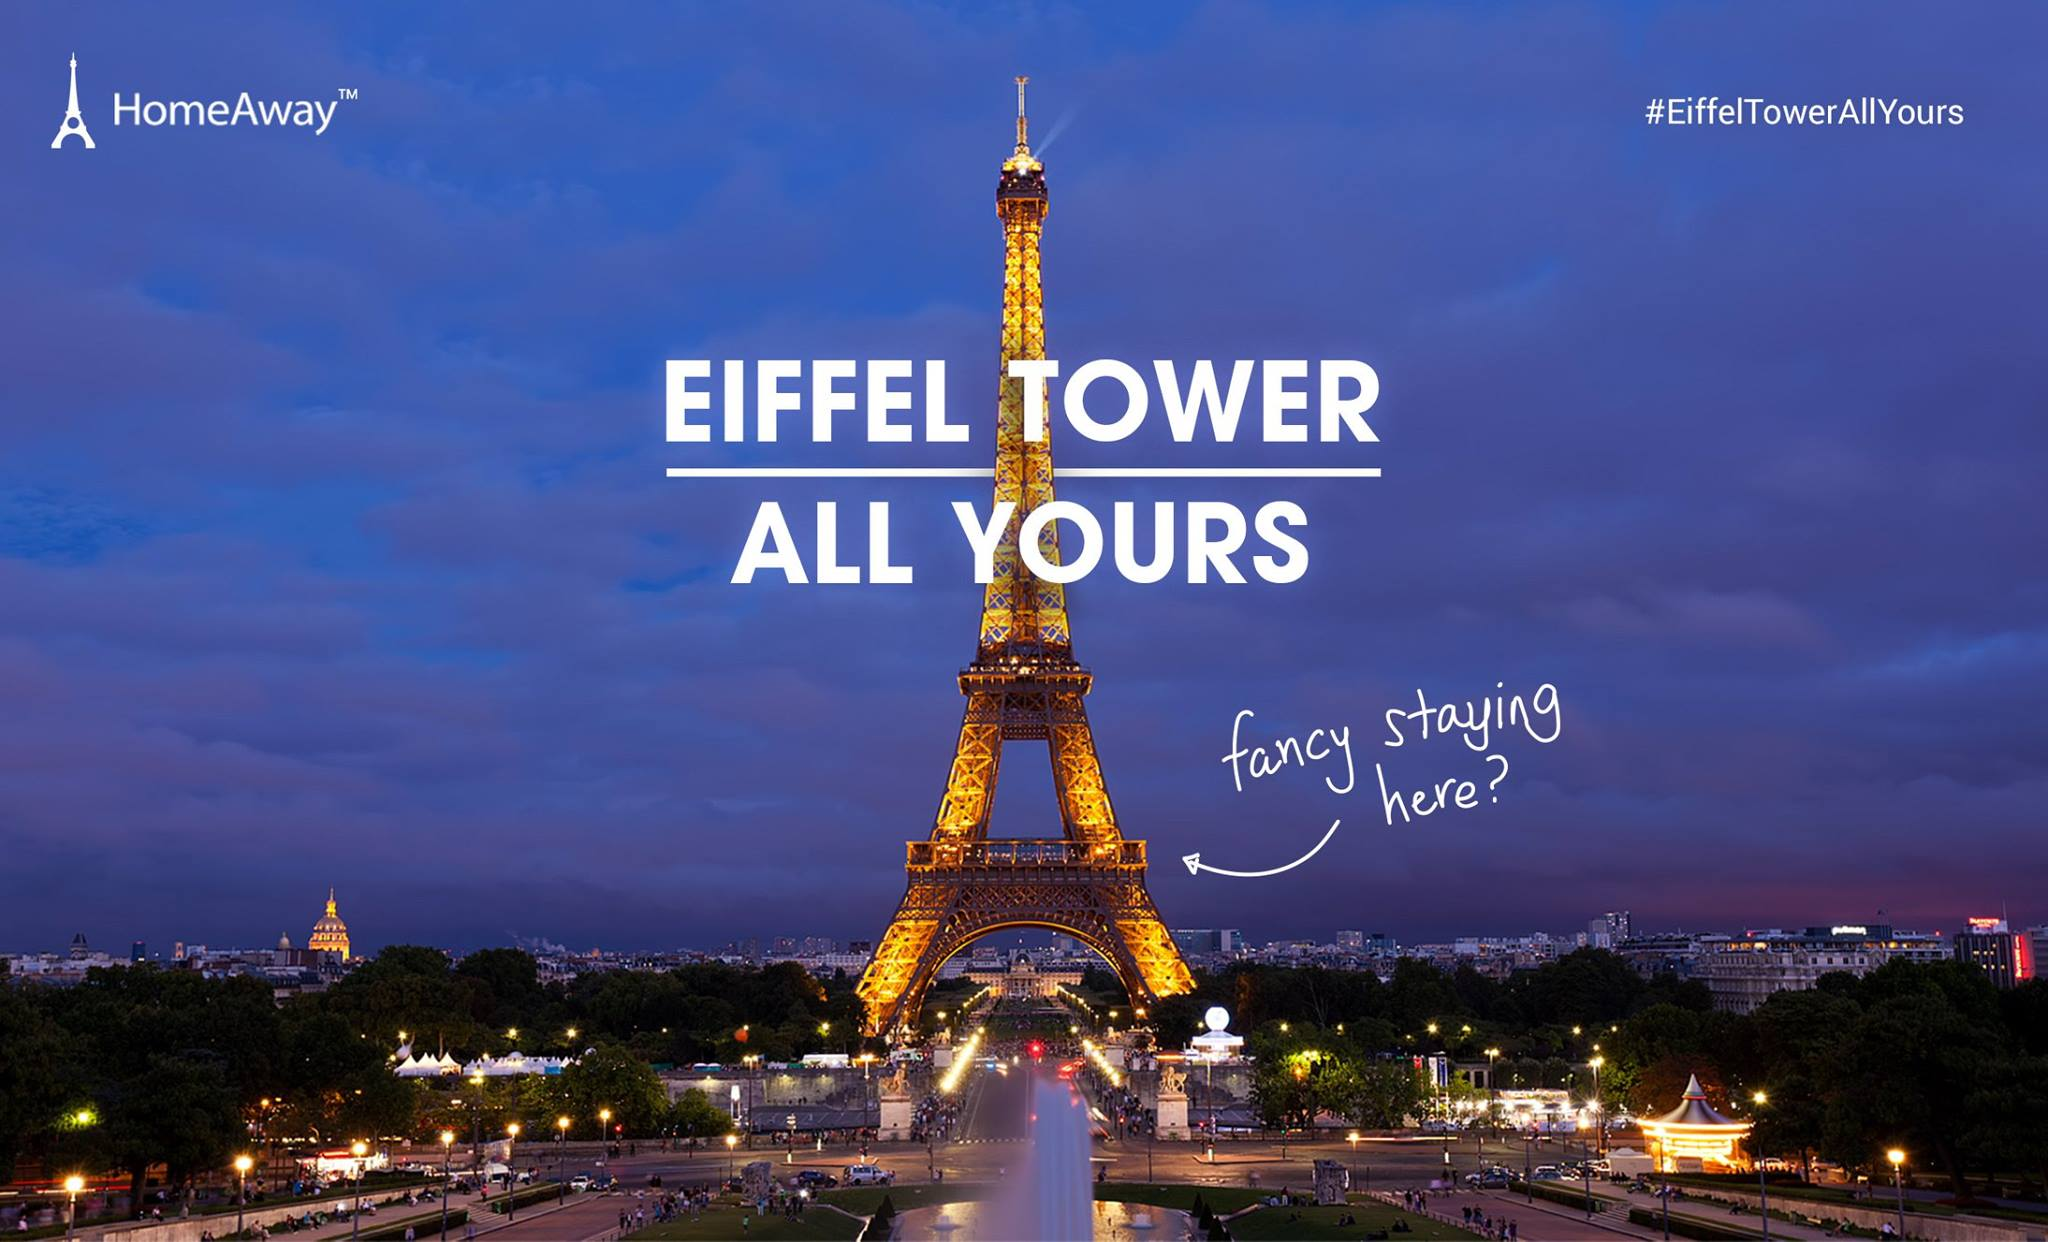 HomeAway Once-in-a-lifetime Opportunity Spend a Night at Eiffel Tower - Why Not Deals 1 & Promotions